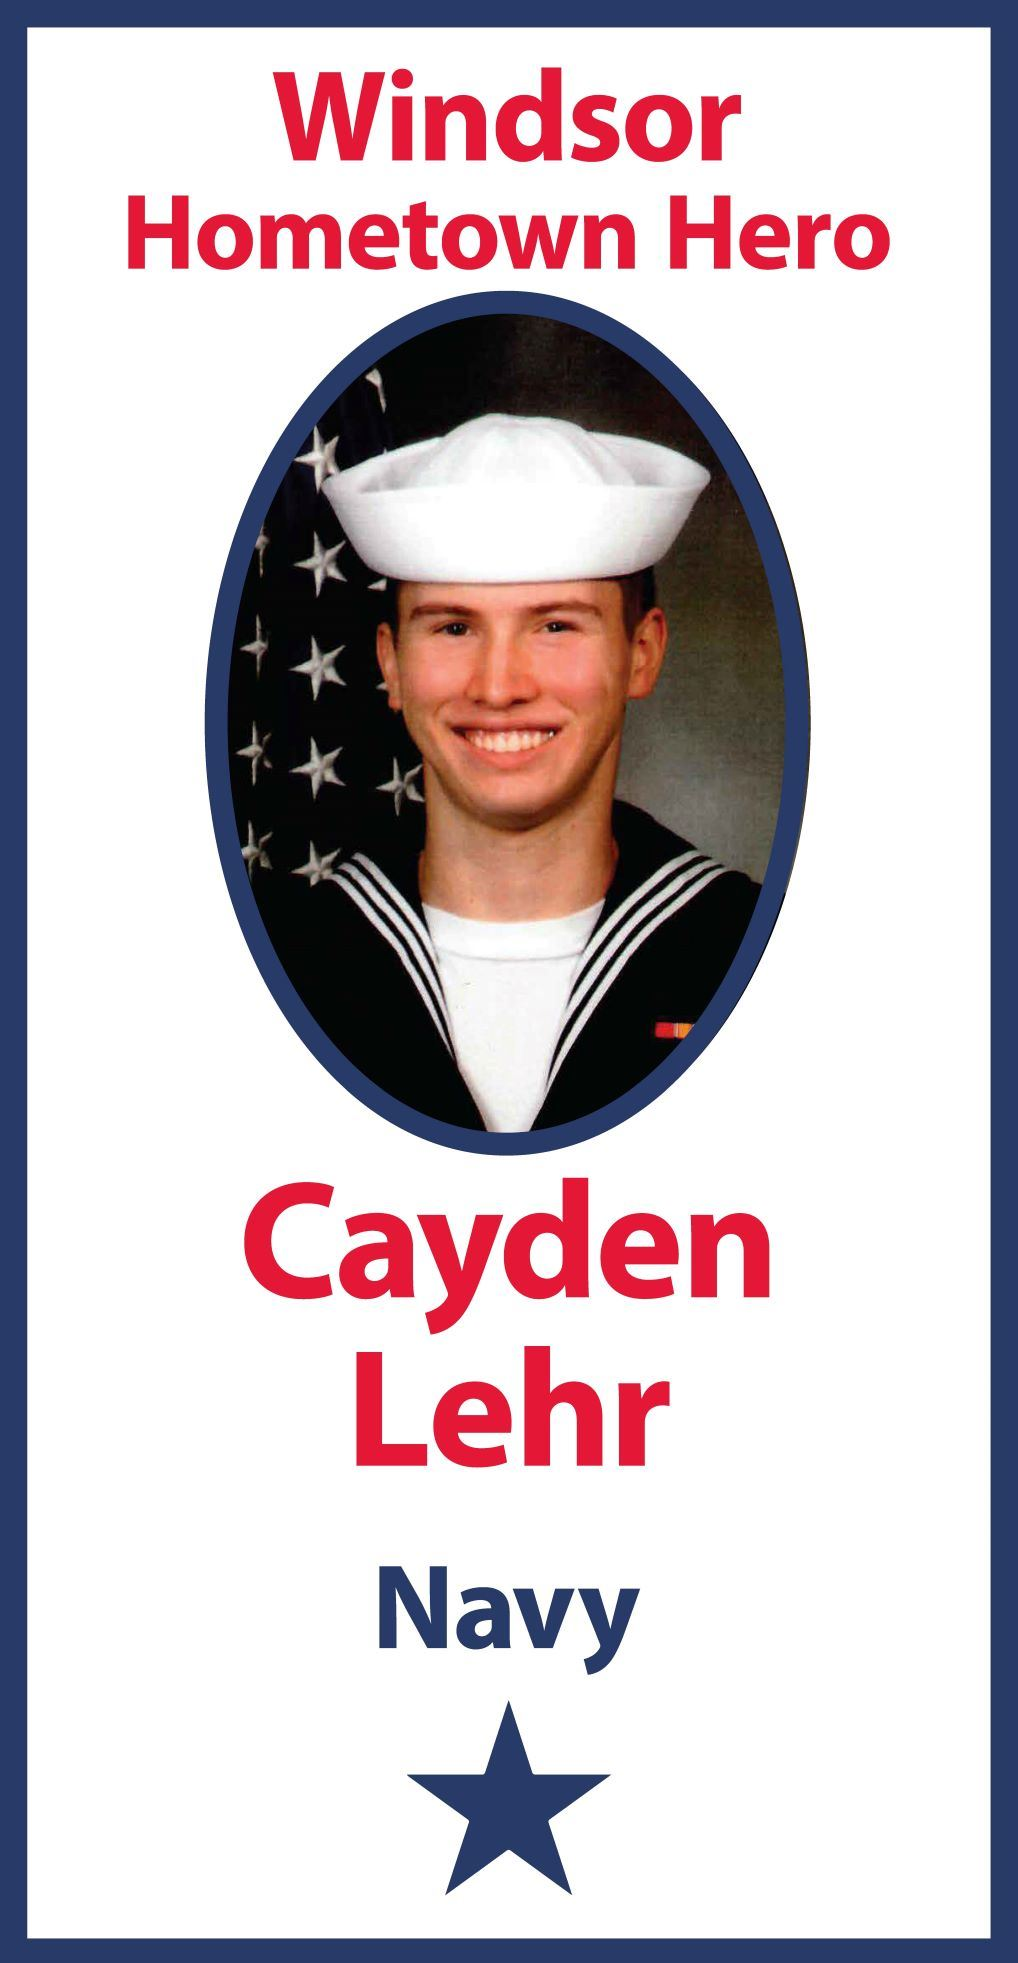 Lehr, Cayden - 46244 HT Heroes banner proof 2020 08 18_Page_1